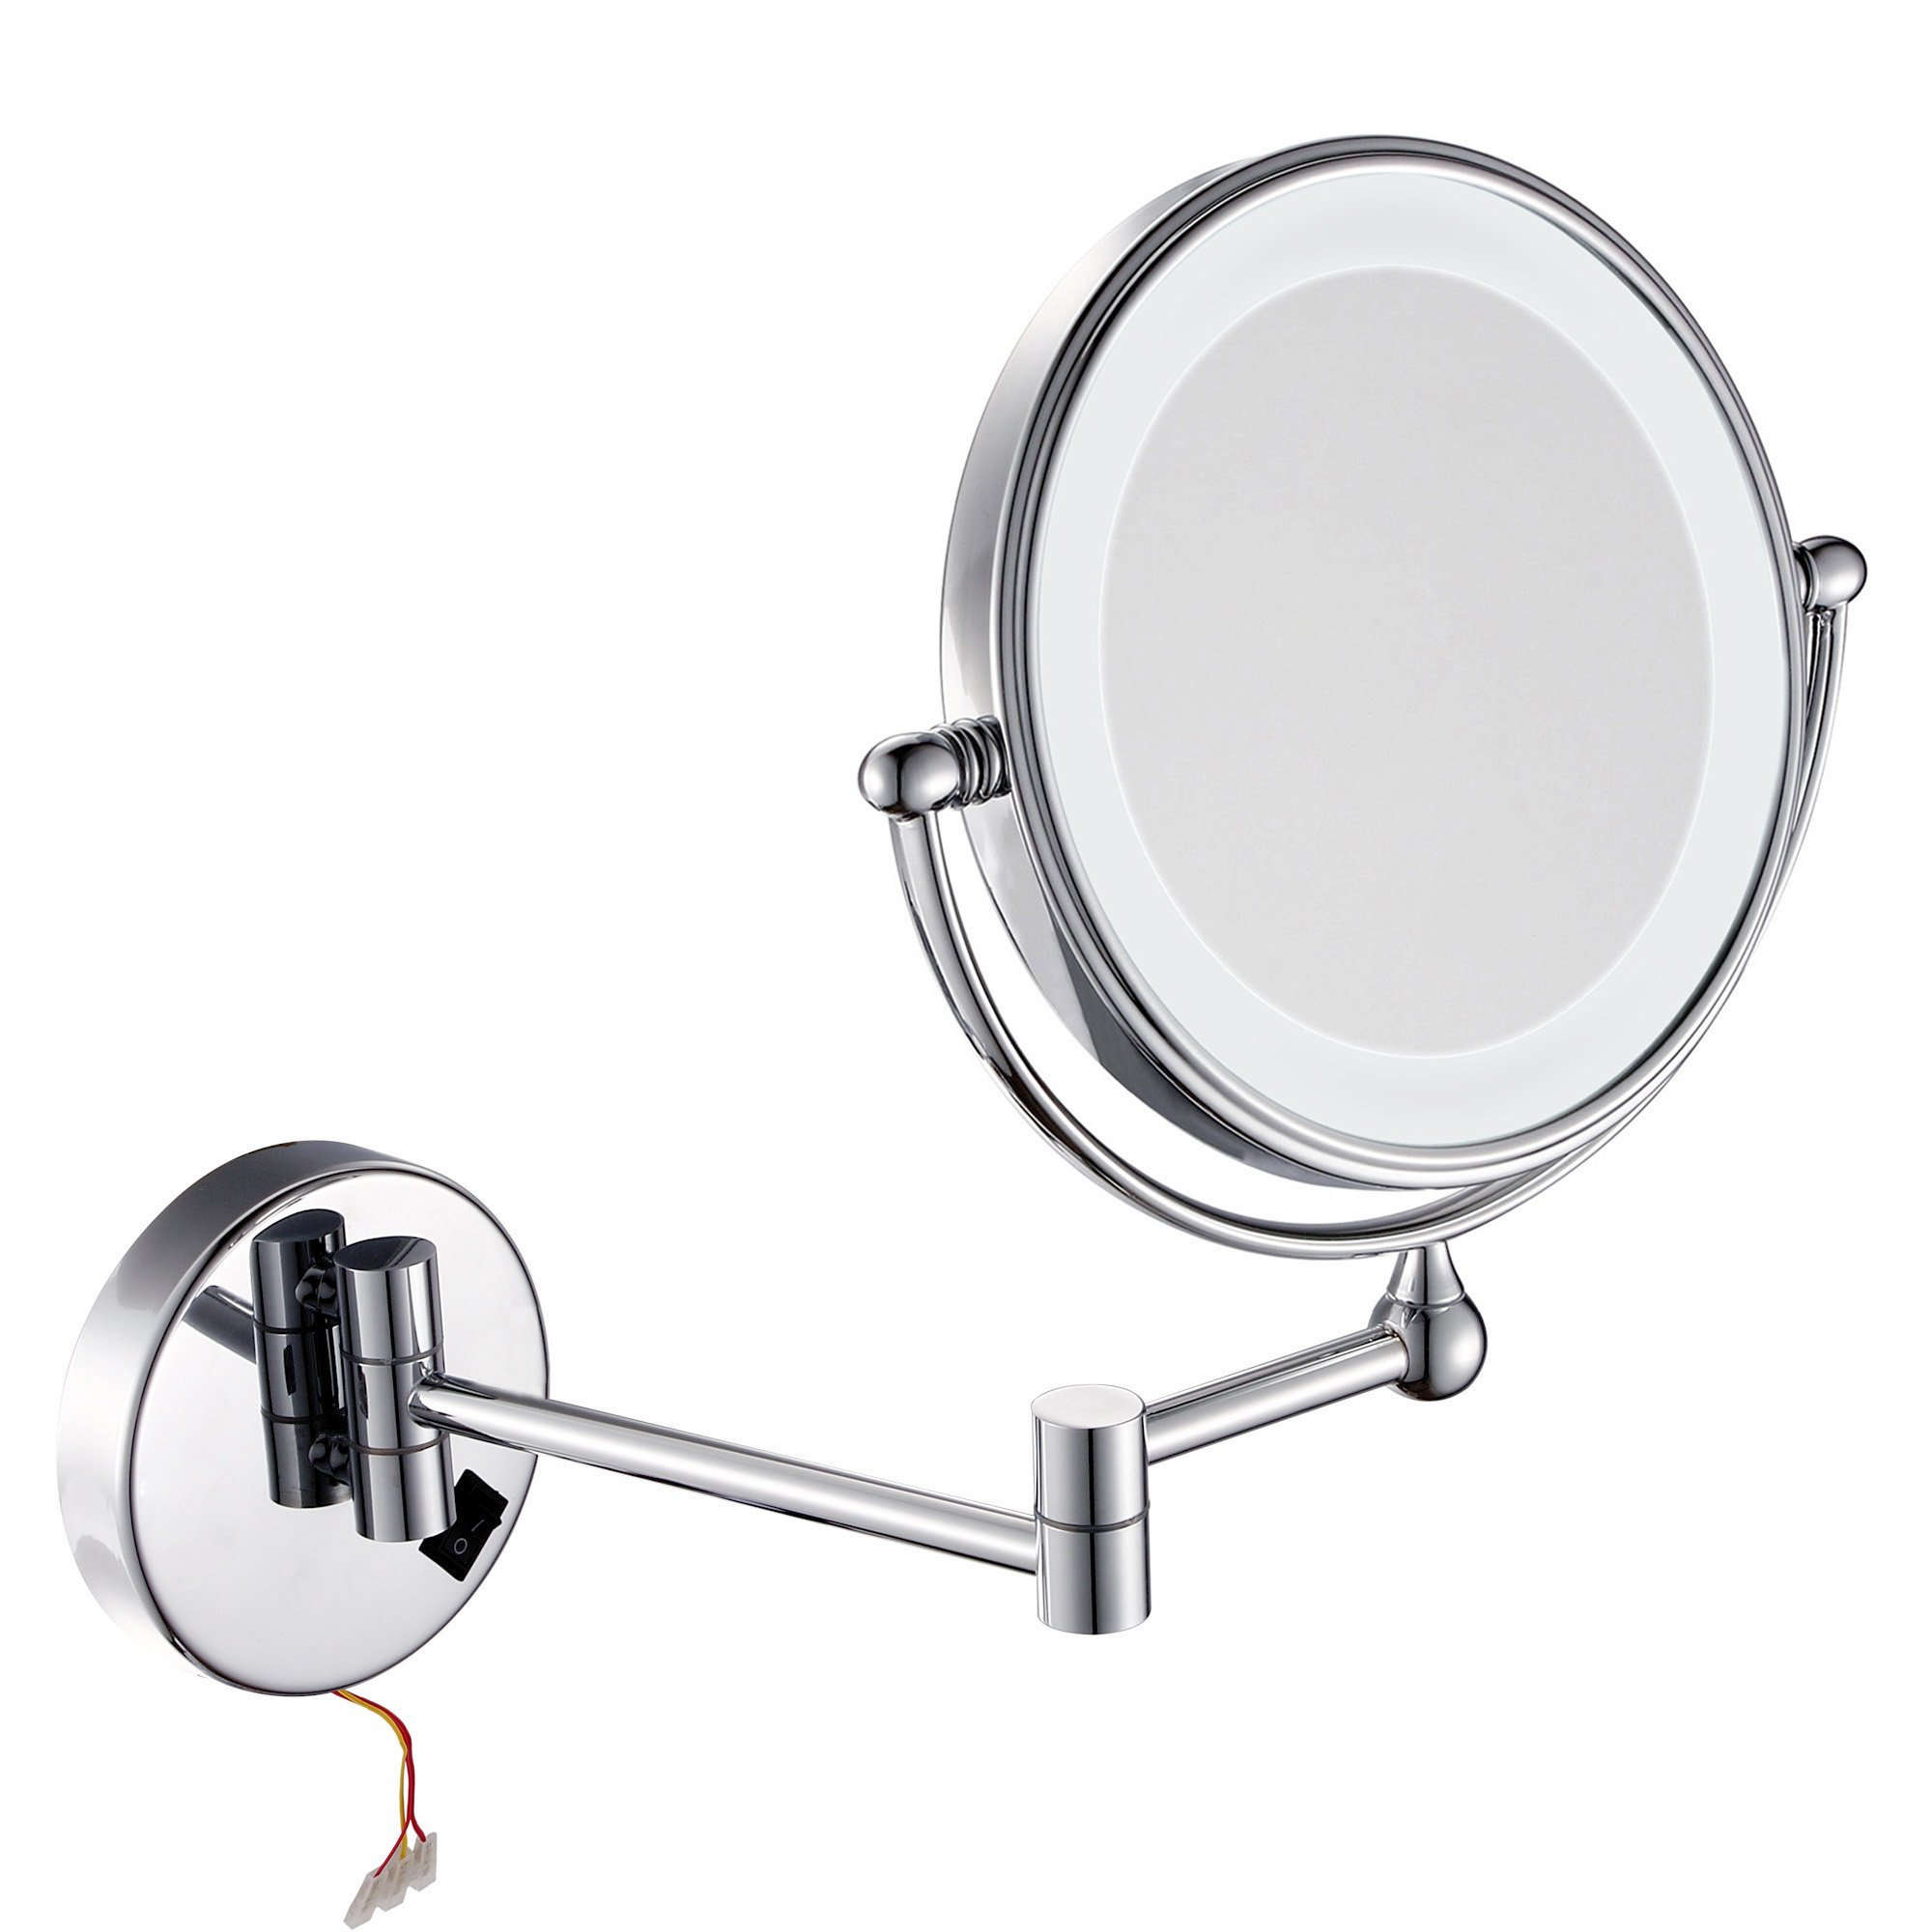 GuRun Wall Mount Magnifying Mirror With Light,7x Magnification,8 inches,Chrome Finish M1805D (8 inch switch,7)